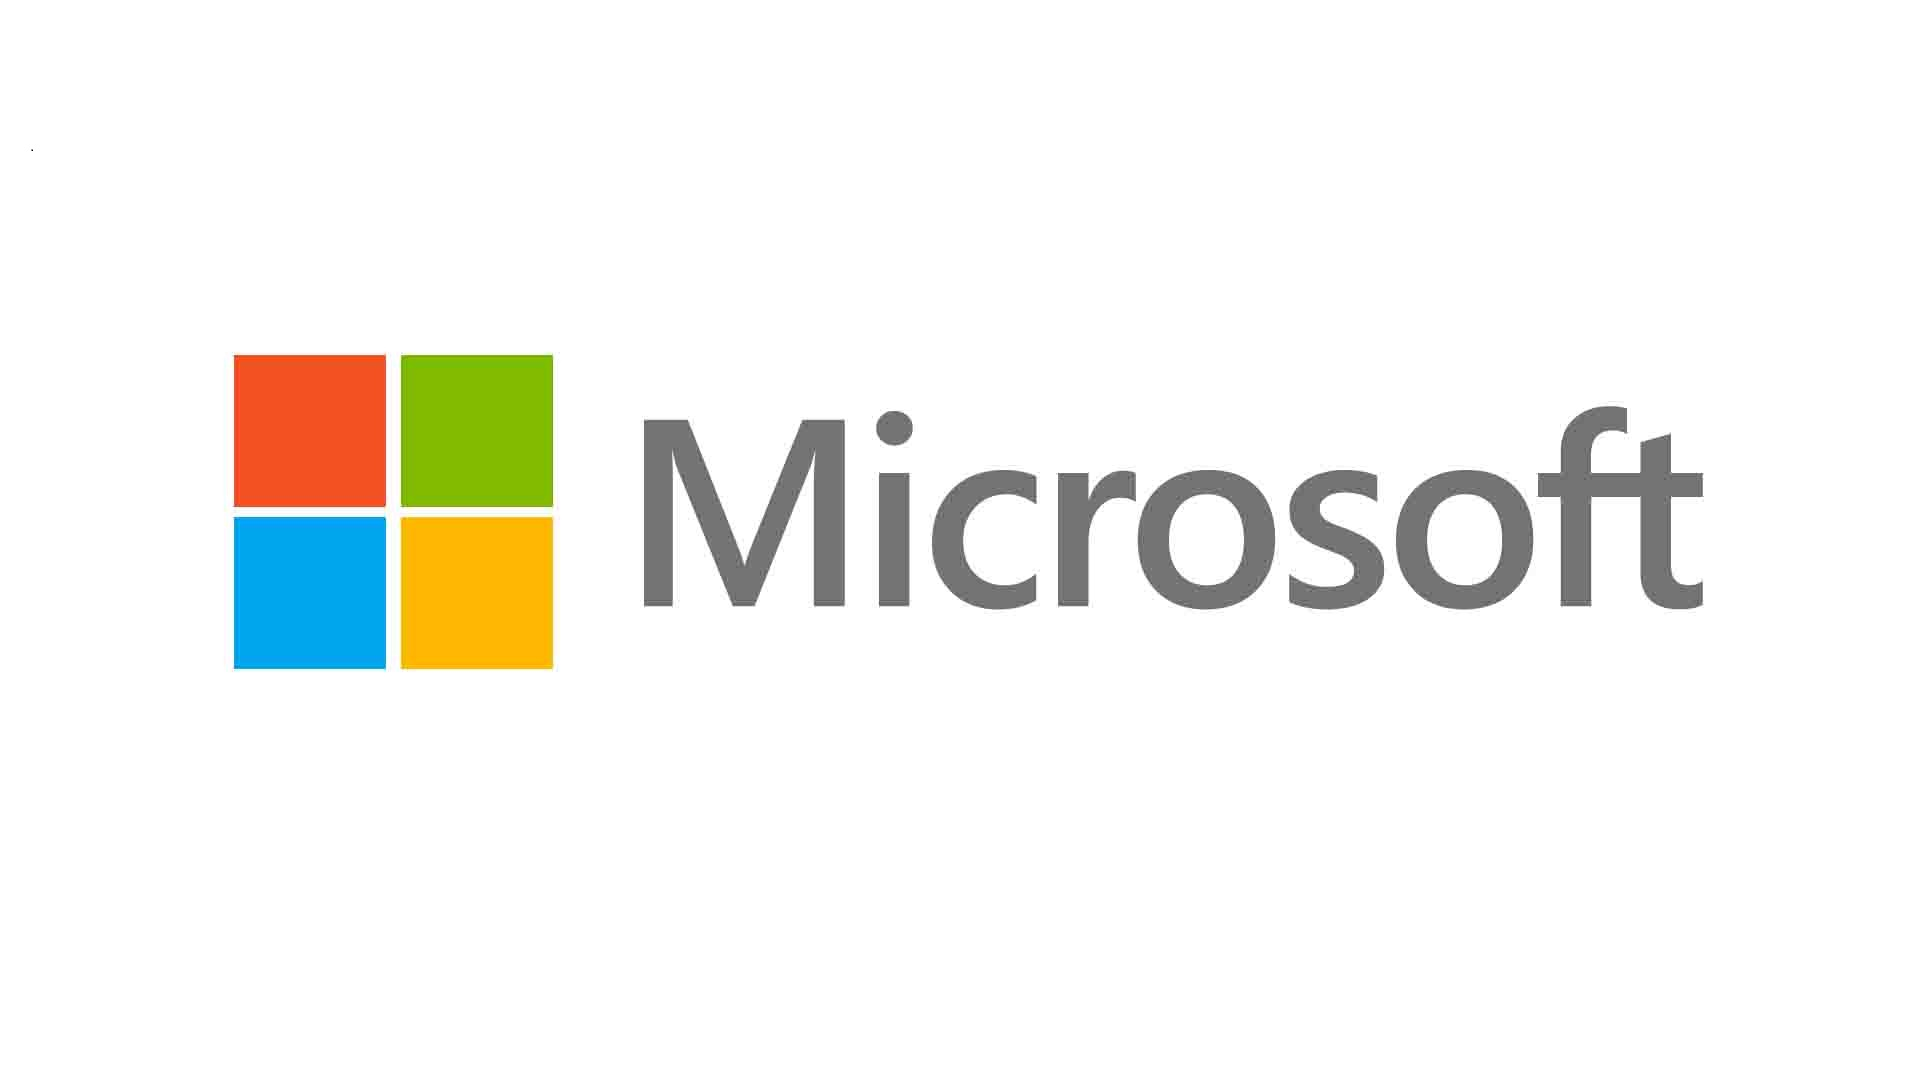 Microsoft Corporation (NASDAQ:MSFT) Unveils Self-Driving Car